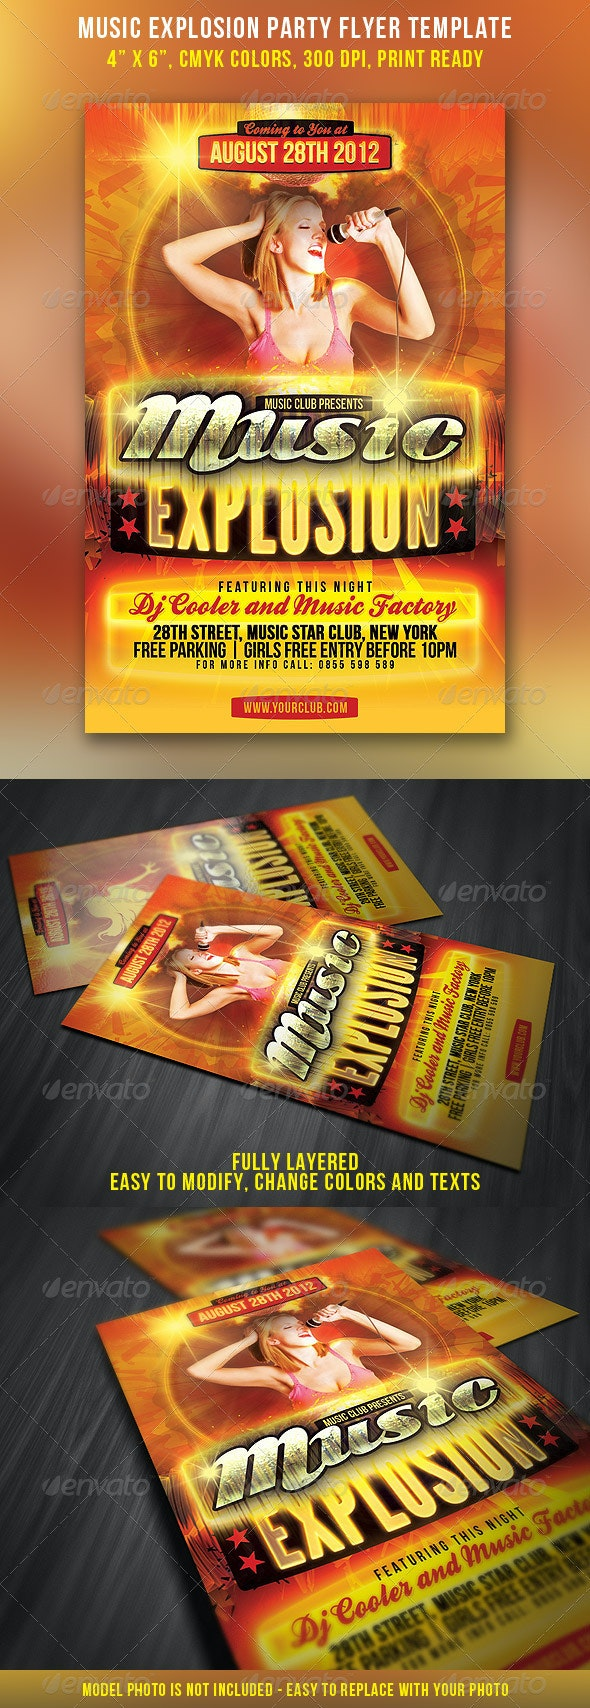 Music Explosion Party Flyer - Clubs & Parties Events